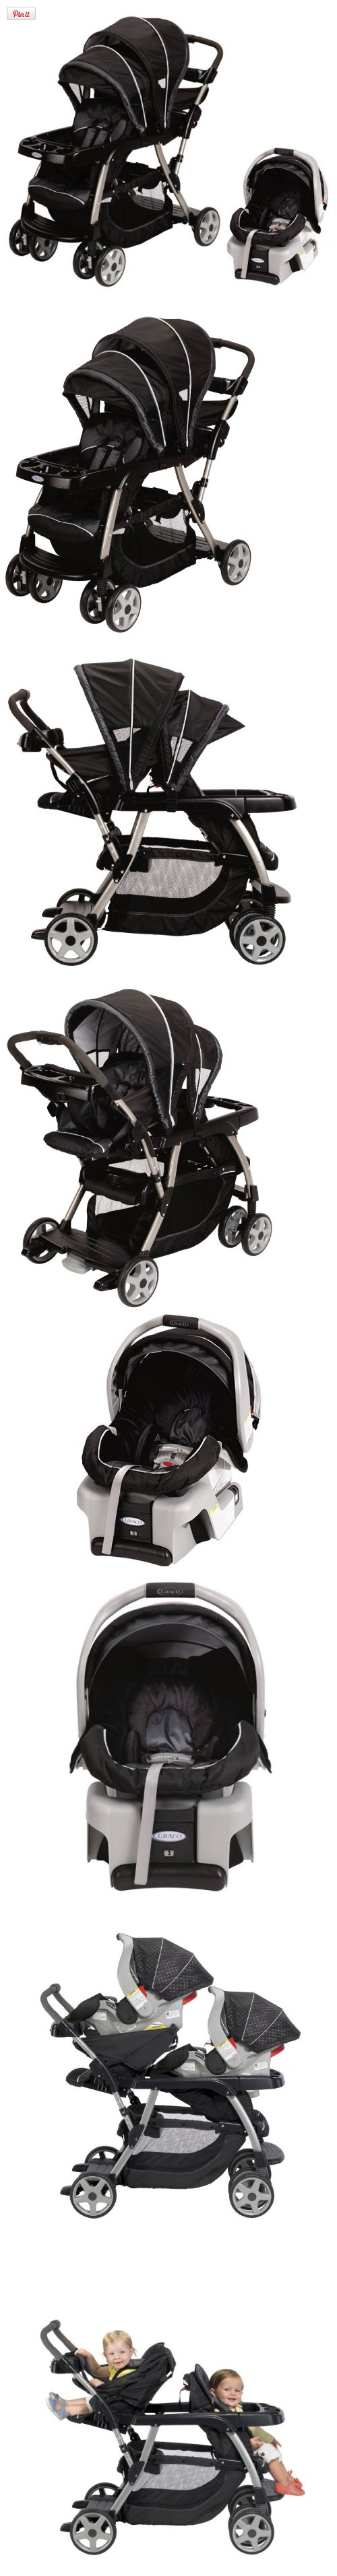 Graco Ready2Grow LX Baby Stoller SnugRide Car Seat Travel System